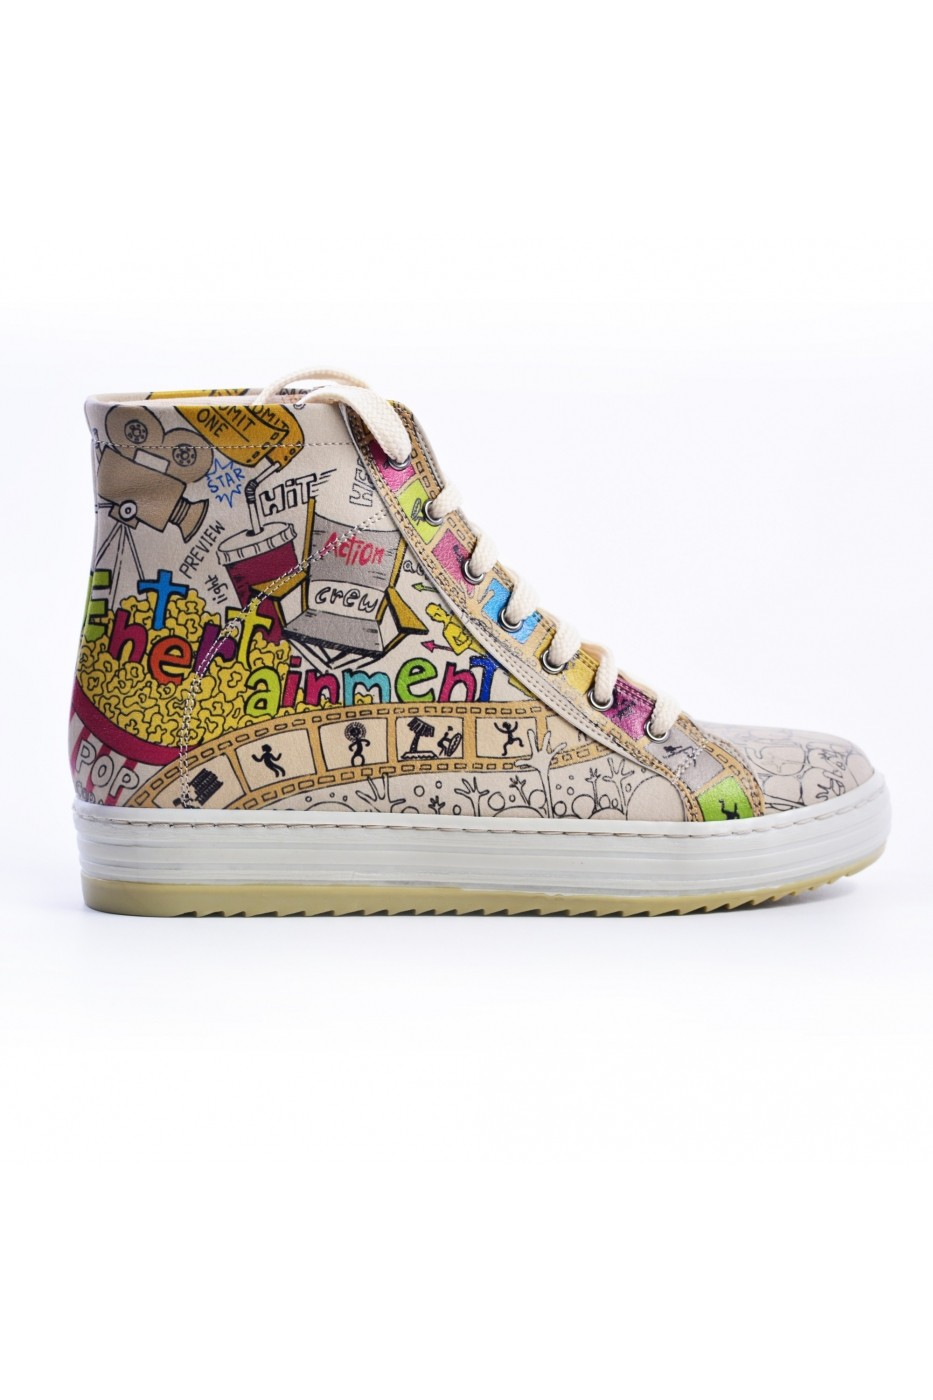 Goby Sneaker cipő FHP-CW2025 - FashionUP! a6ee5d9cca